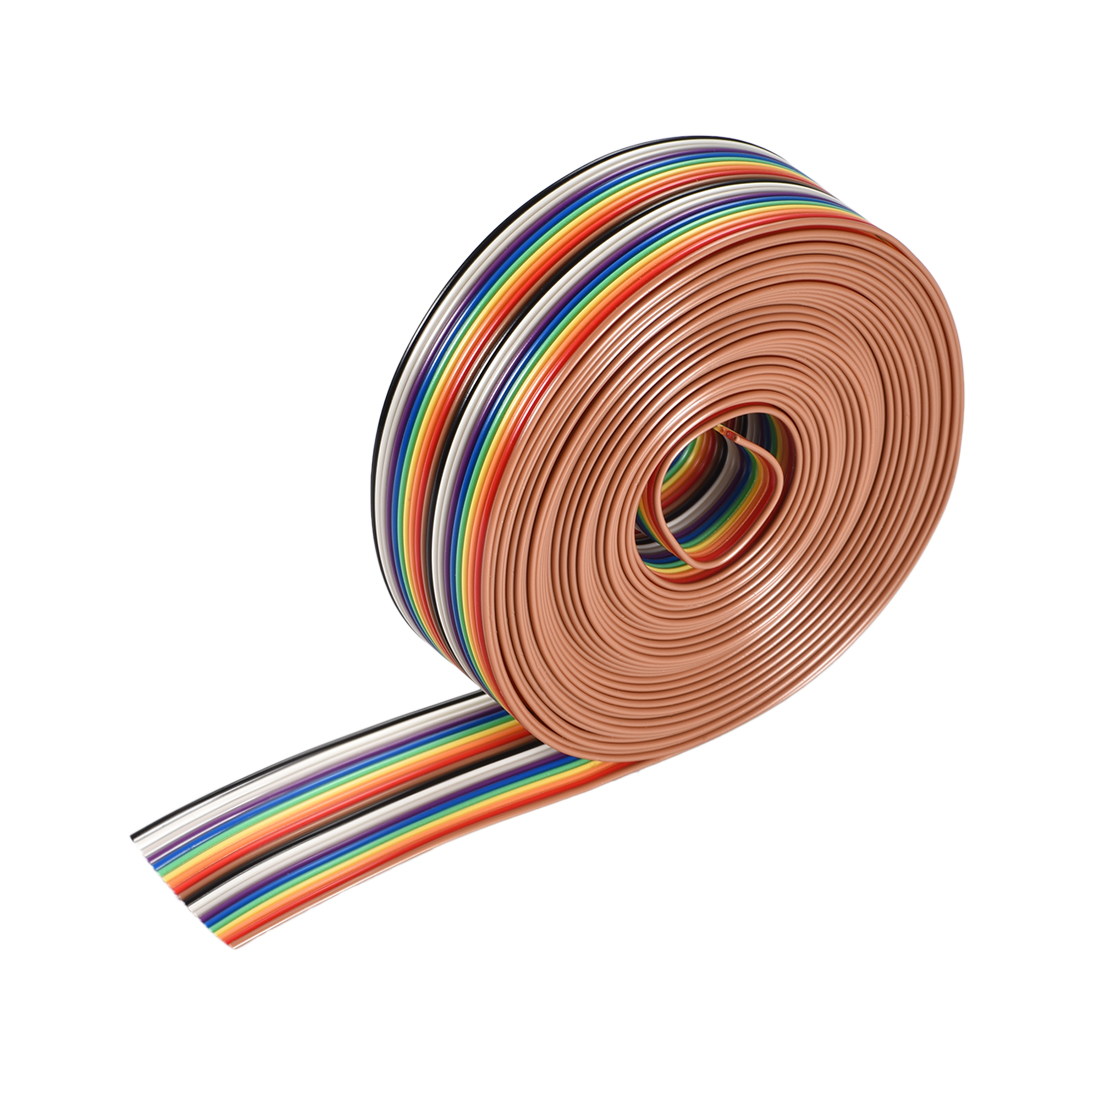 IDC Rainbow Wire Flat Ribbon Cable 20P 1.27mm Pitch 5meter/16.4ft Length